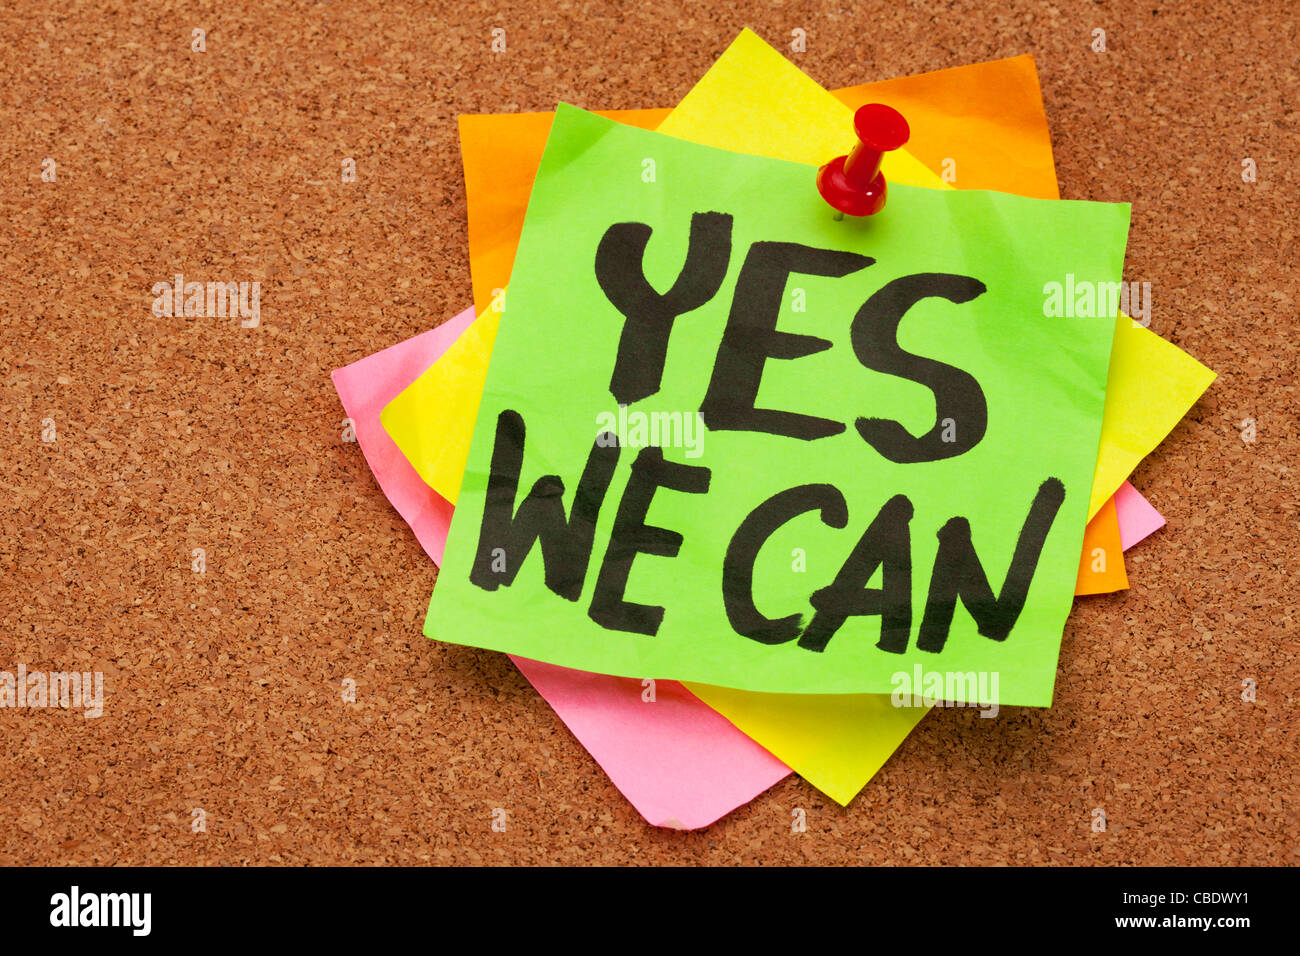 yes we can - motivational slogan on a stack of sticky notes posted on cork bulletin board - Stock Image